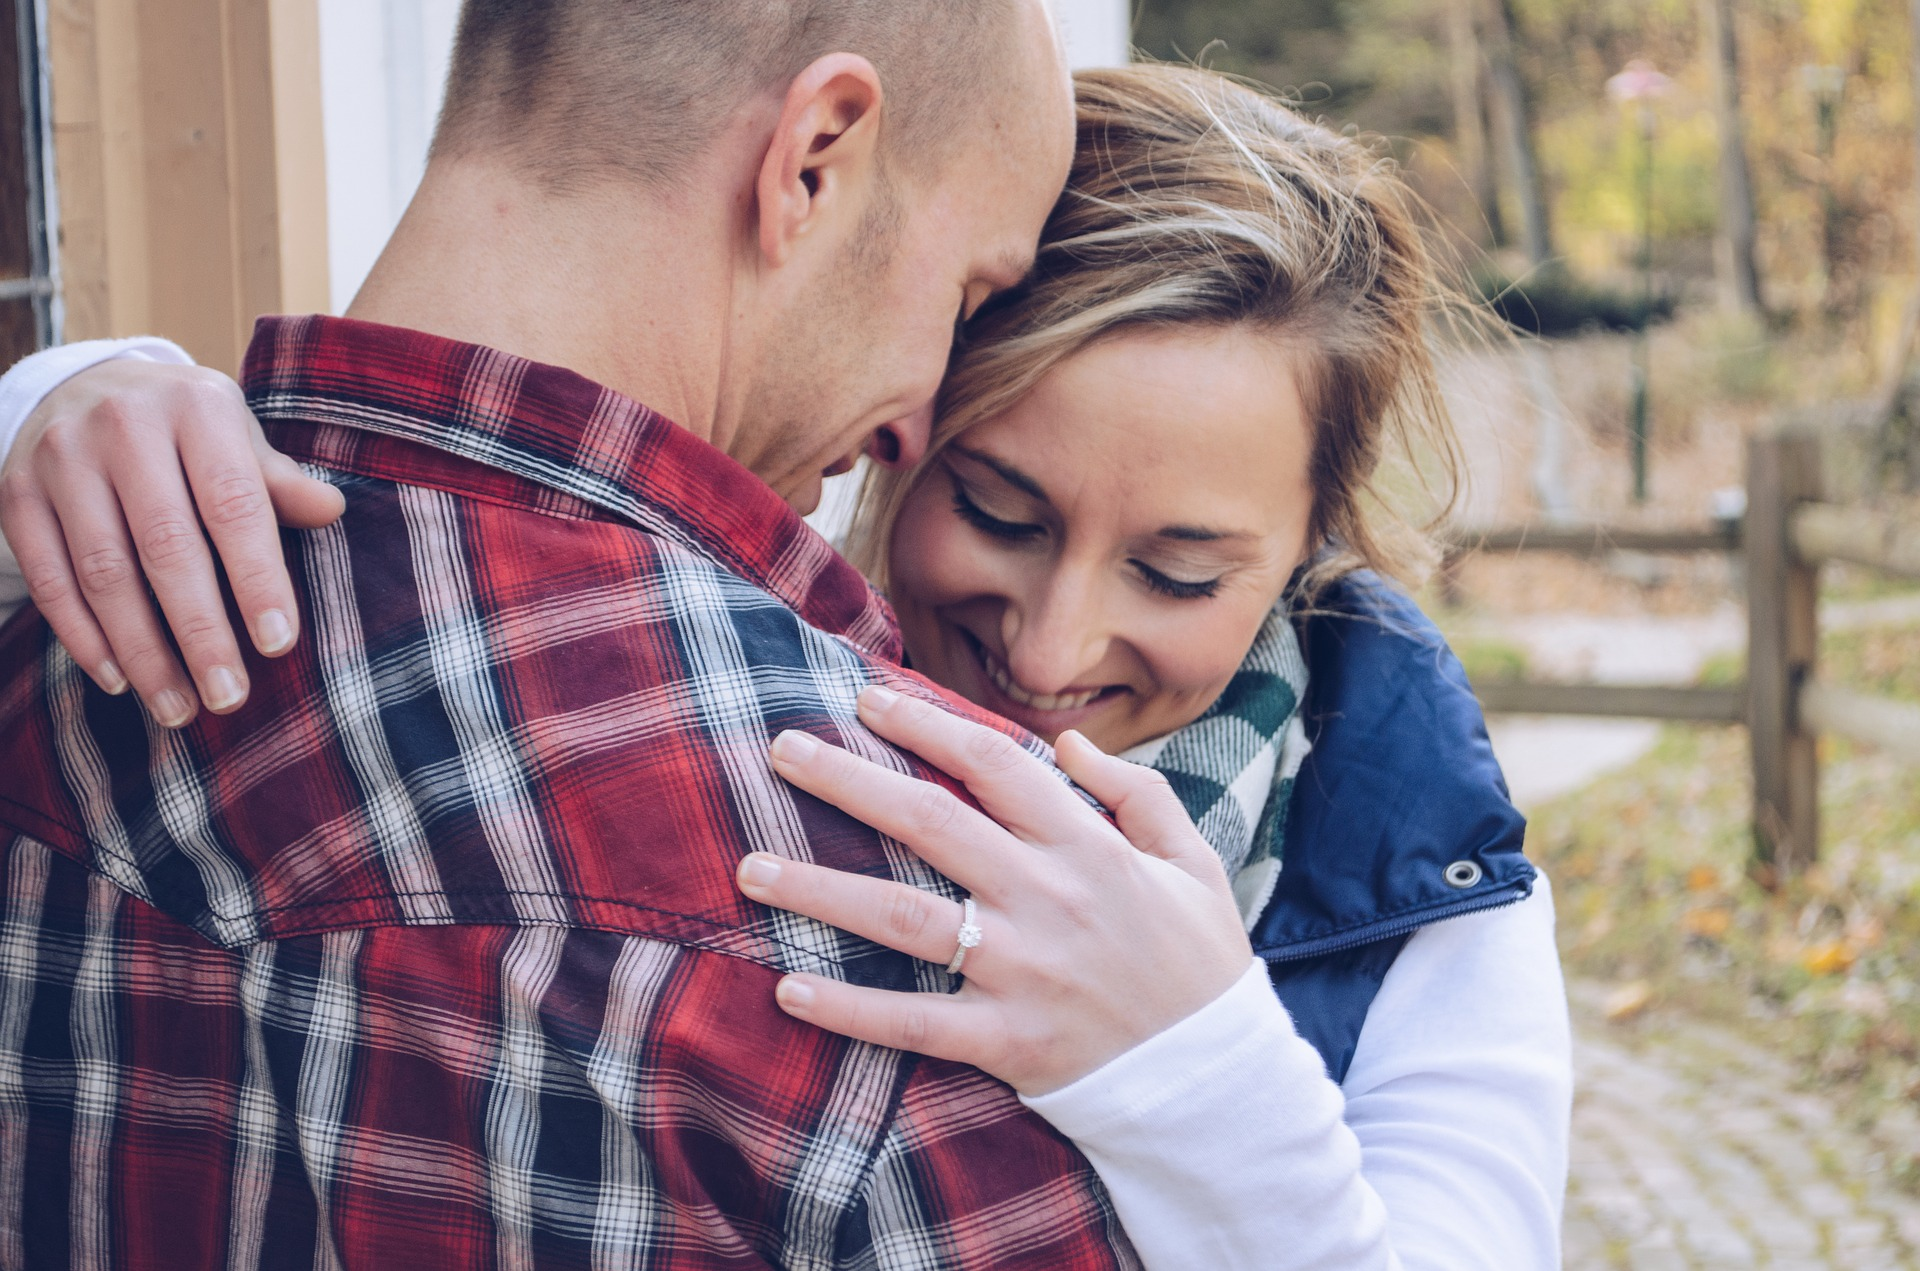 Hold Me Tight® Couples Weekend Retreat - A powerful 2-day workshop to help couples rekindle and strengthen their connection.